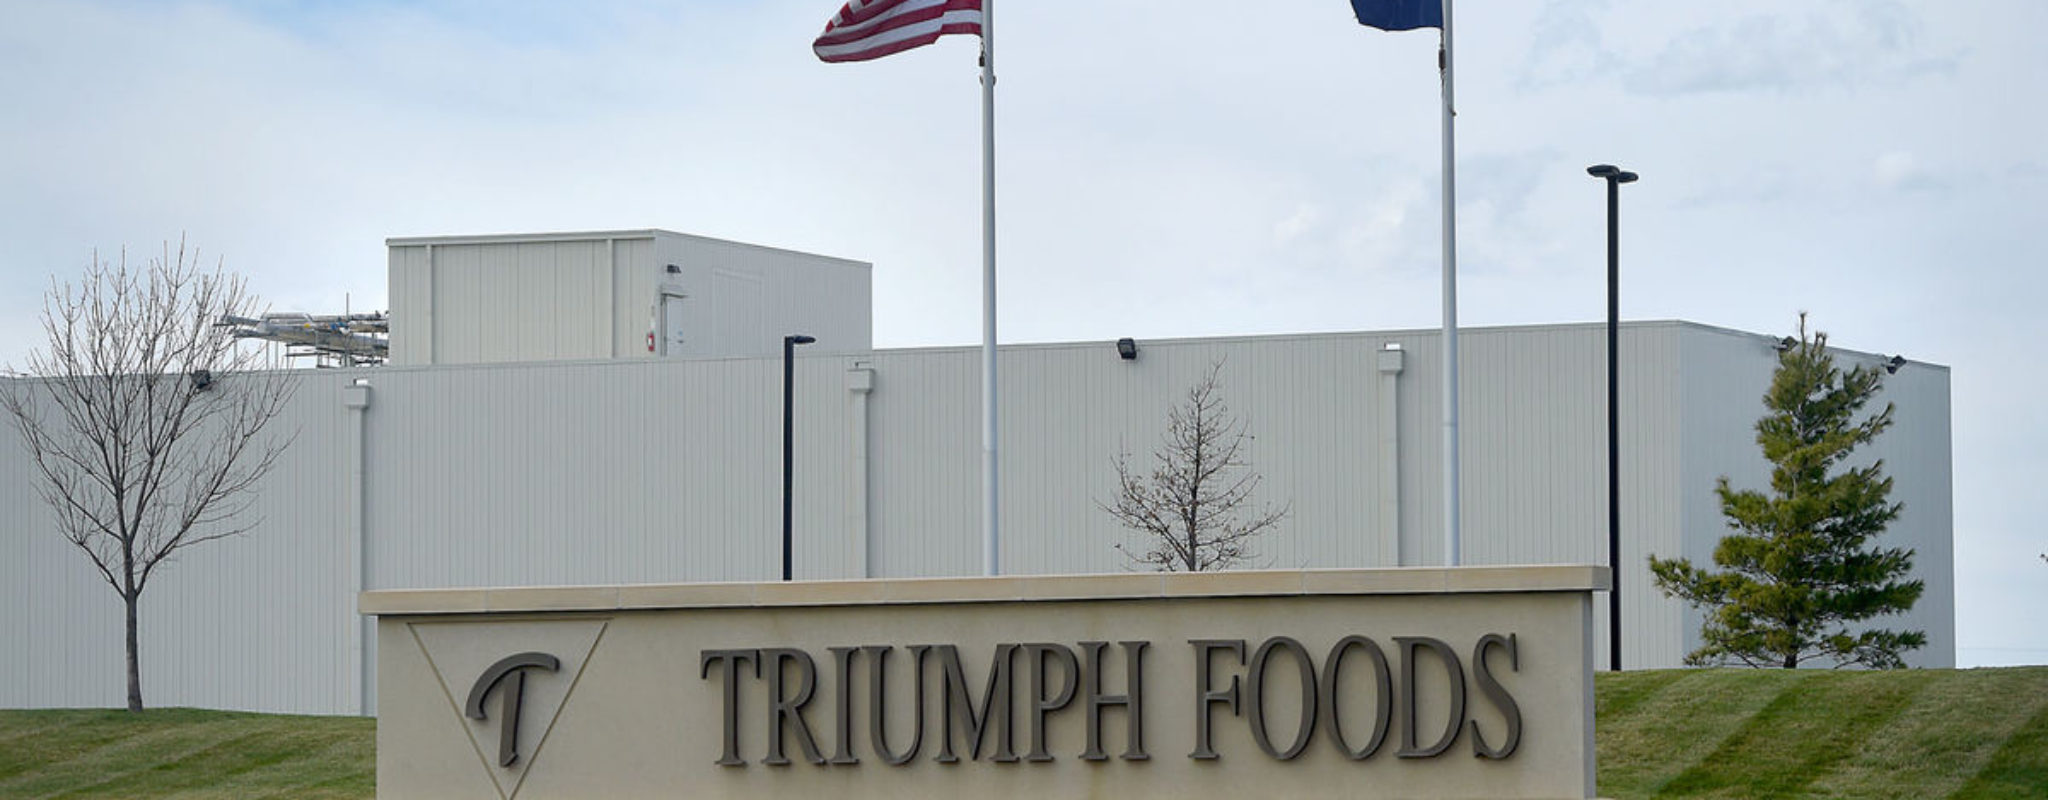 Triumph donates 32,000 pounds of meat to food bank